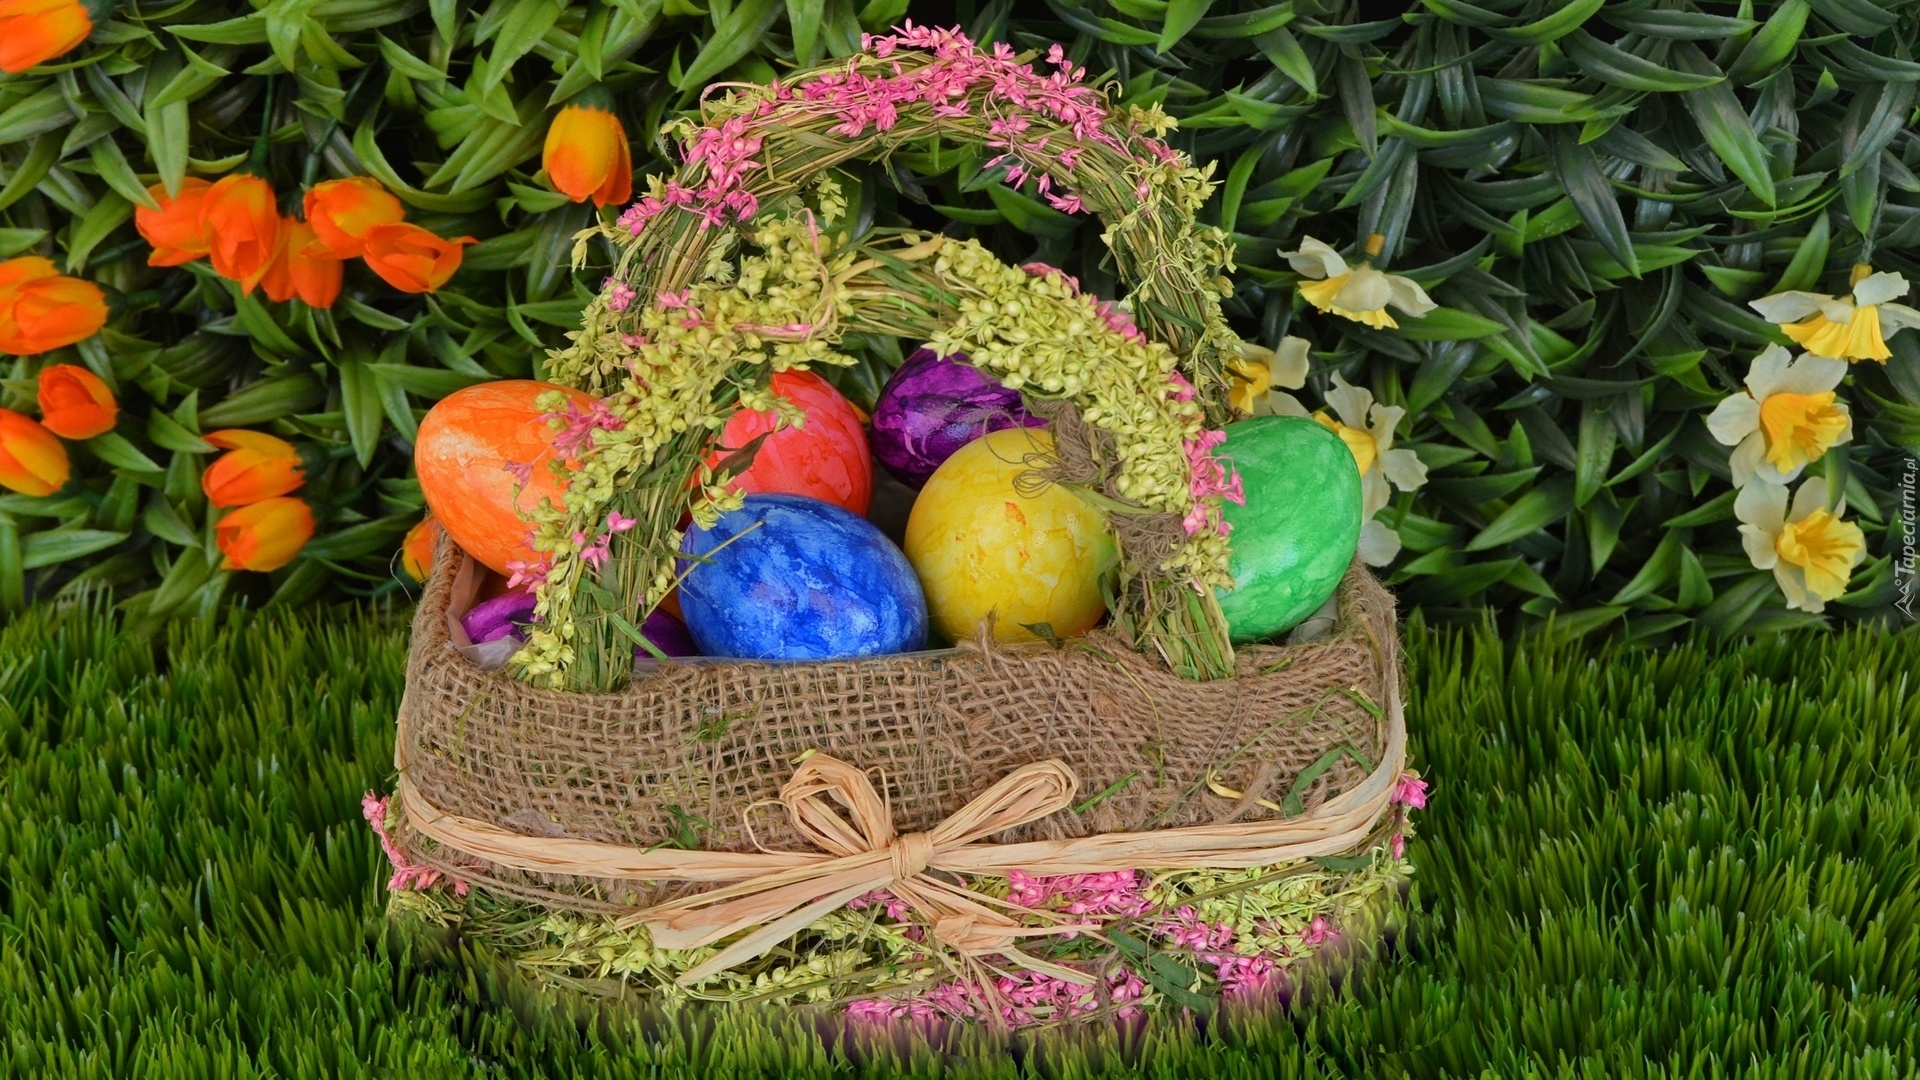 Easter Eggs In A Basket wallpaper for computer